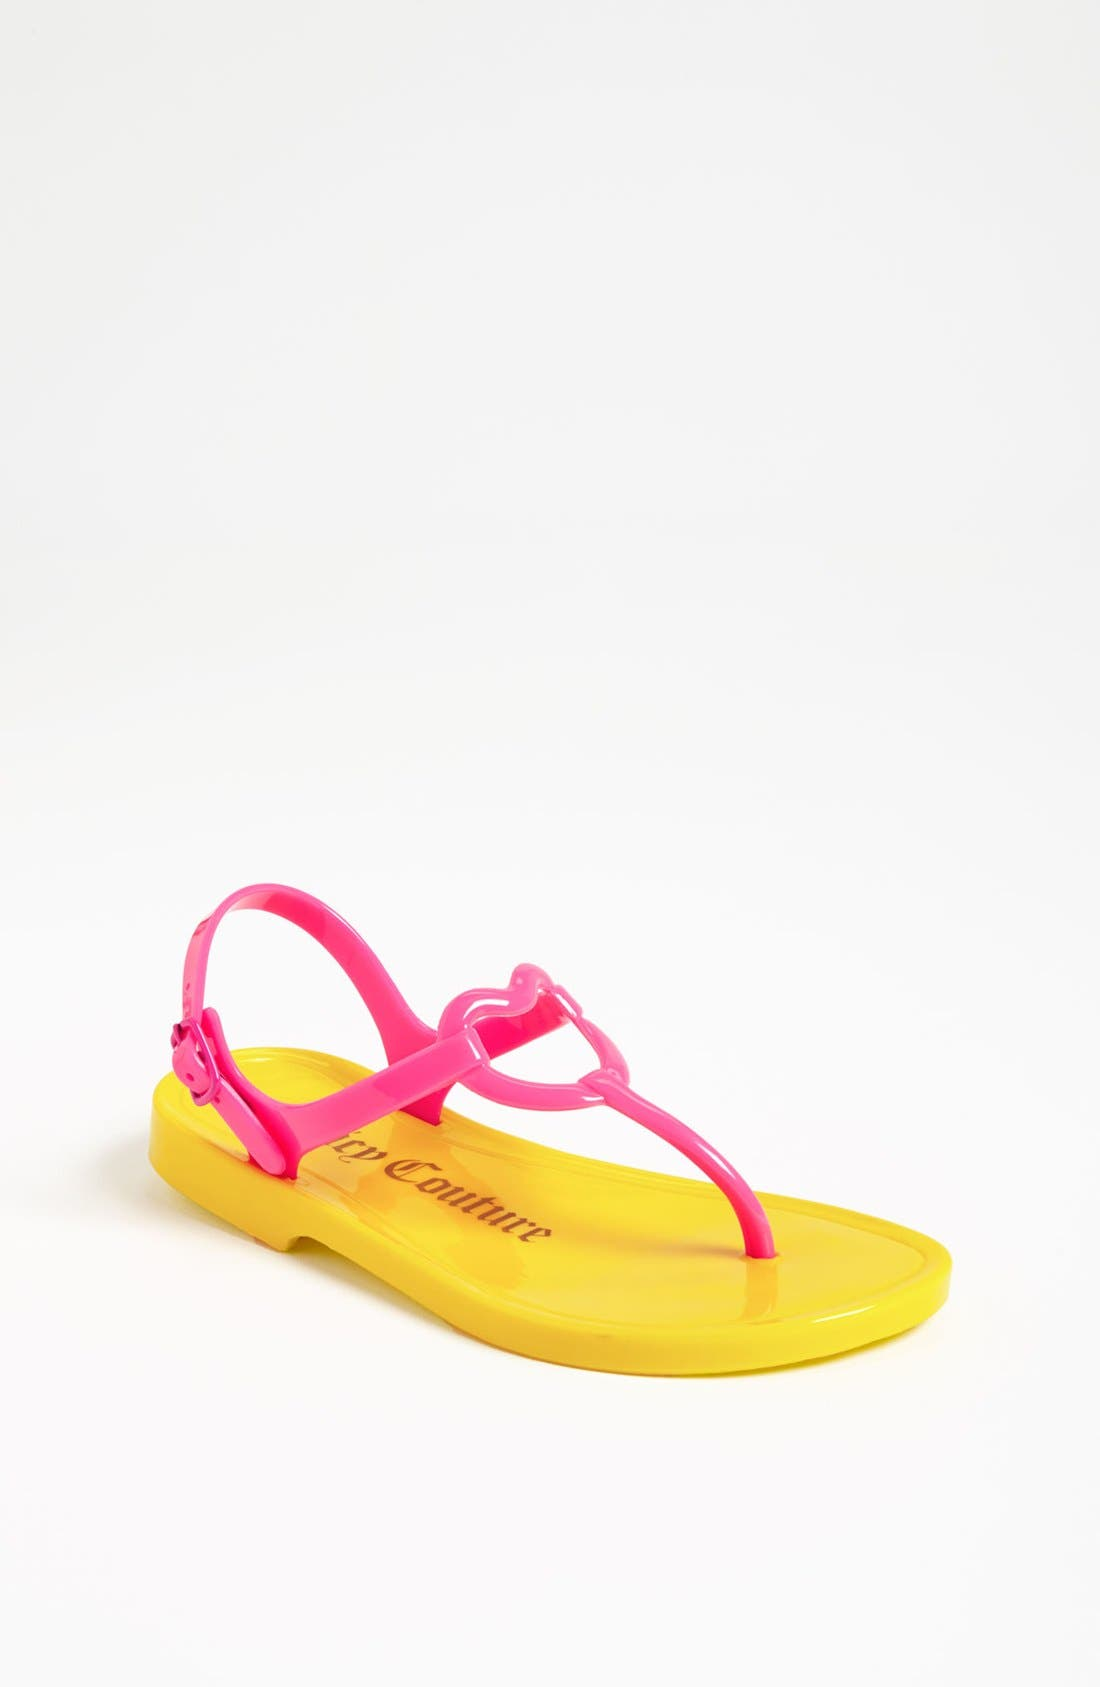 Alternate Image 1 Selected - Juicy Couture 'Rory' Sandal (Toddler, Little Kid & Big Kid)